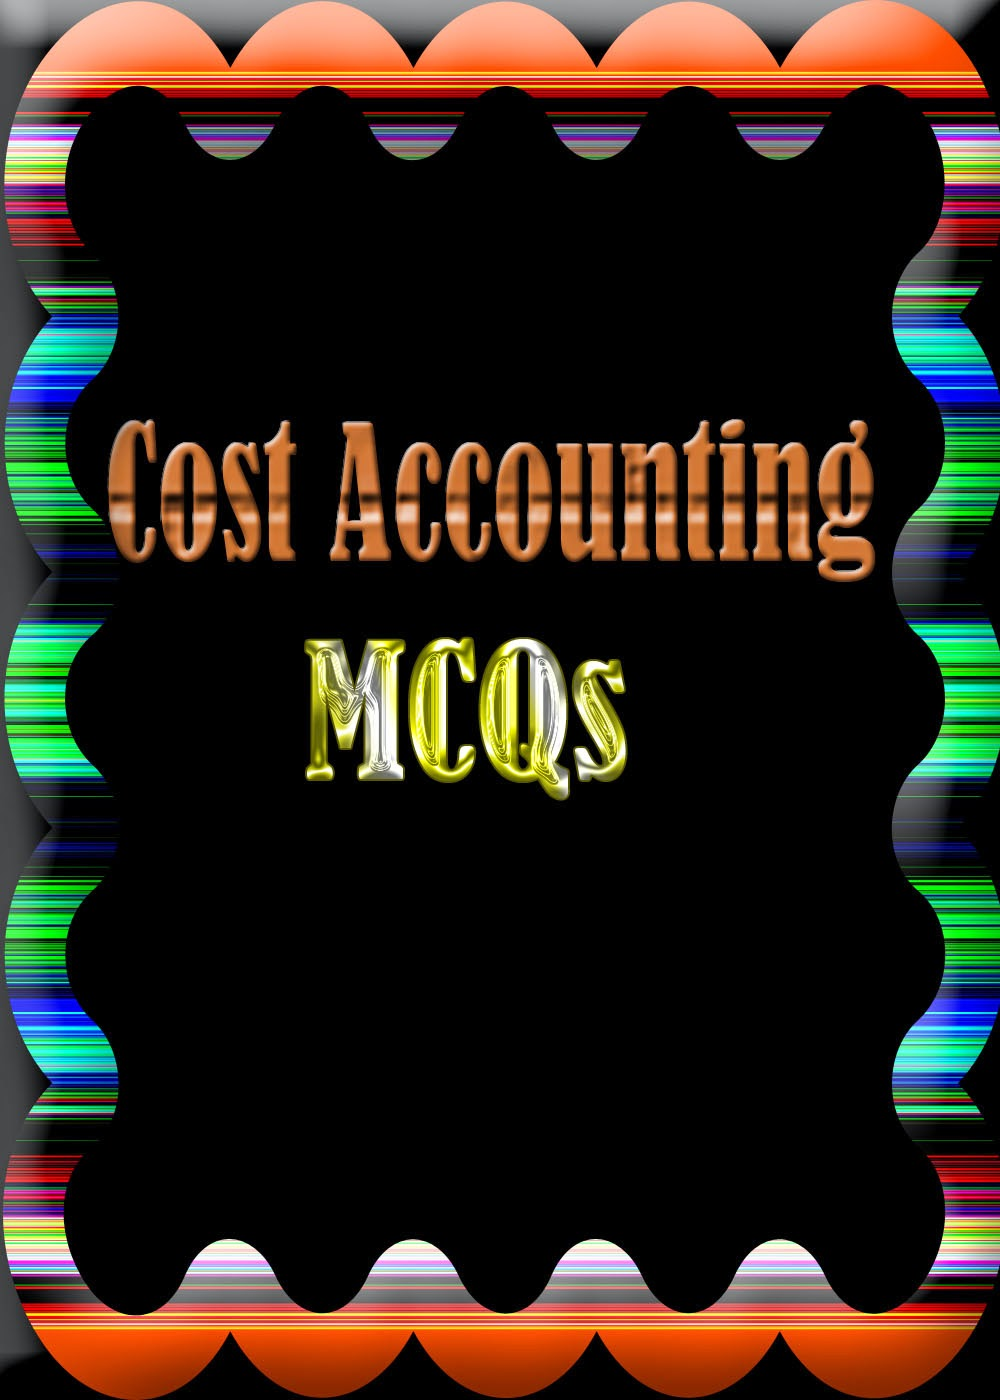 https://ia801507.us.archive.org/27/items/604ACOSTANDMANAGEMENTACCOUNTING/604A-COST%20AND%20MANAGEMENT%20ACCOUNTING.pdf